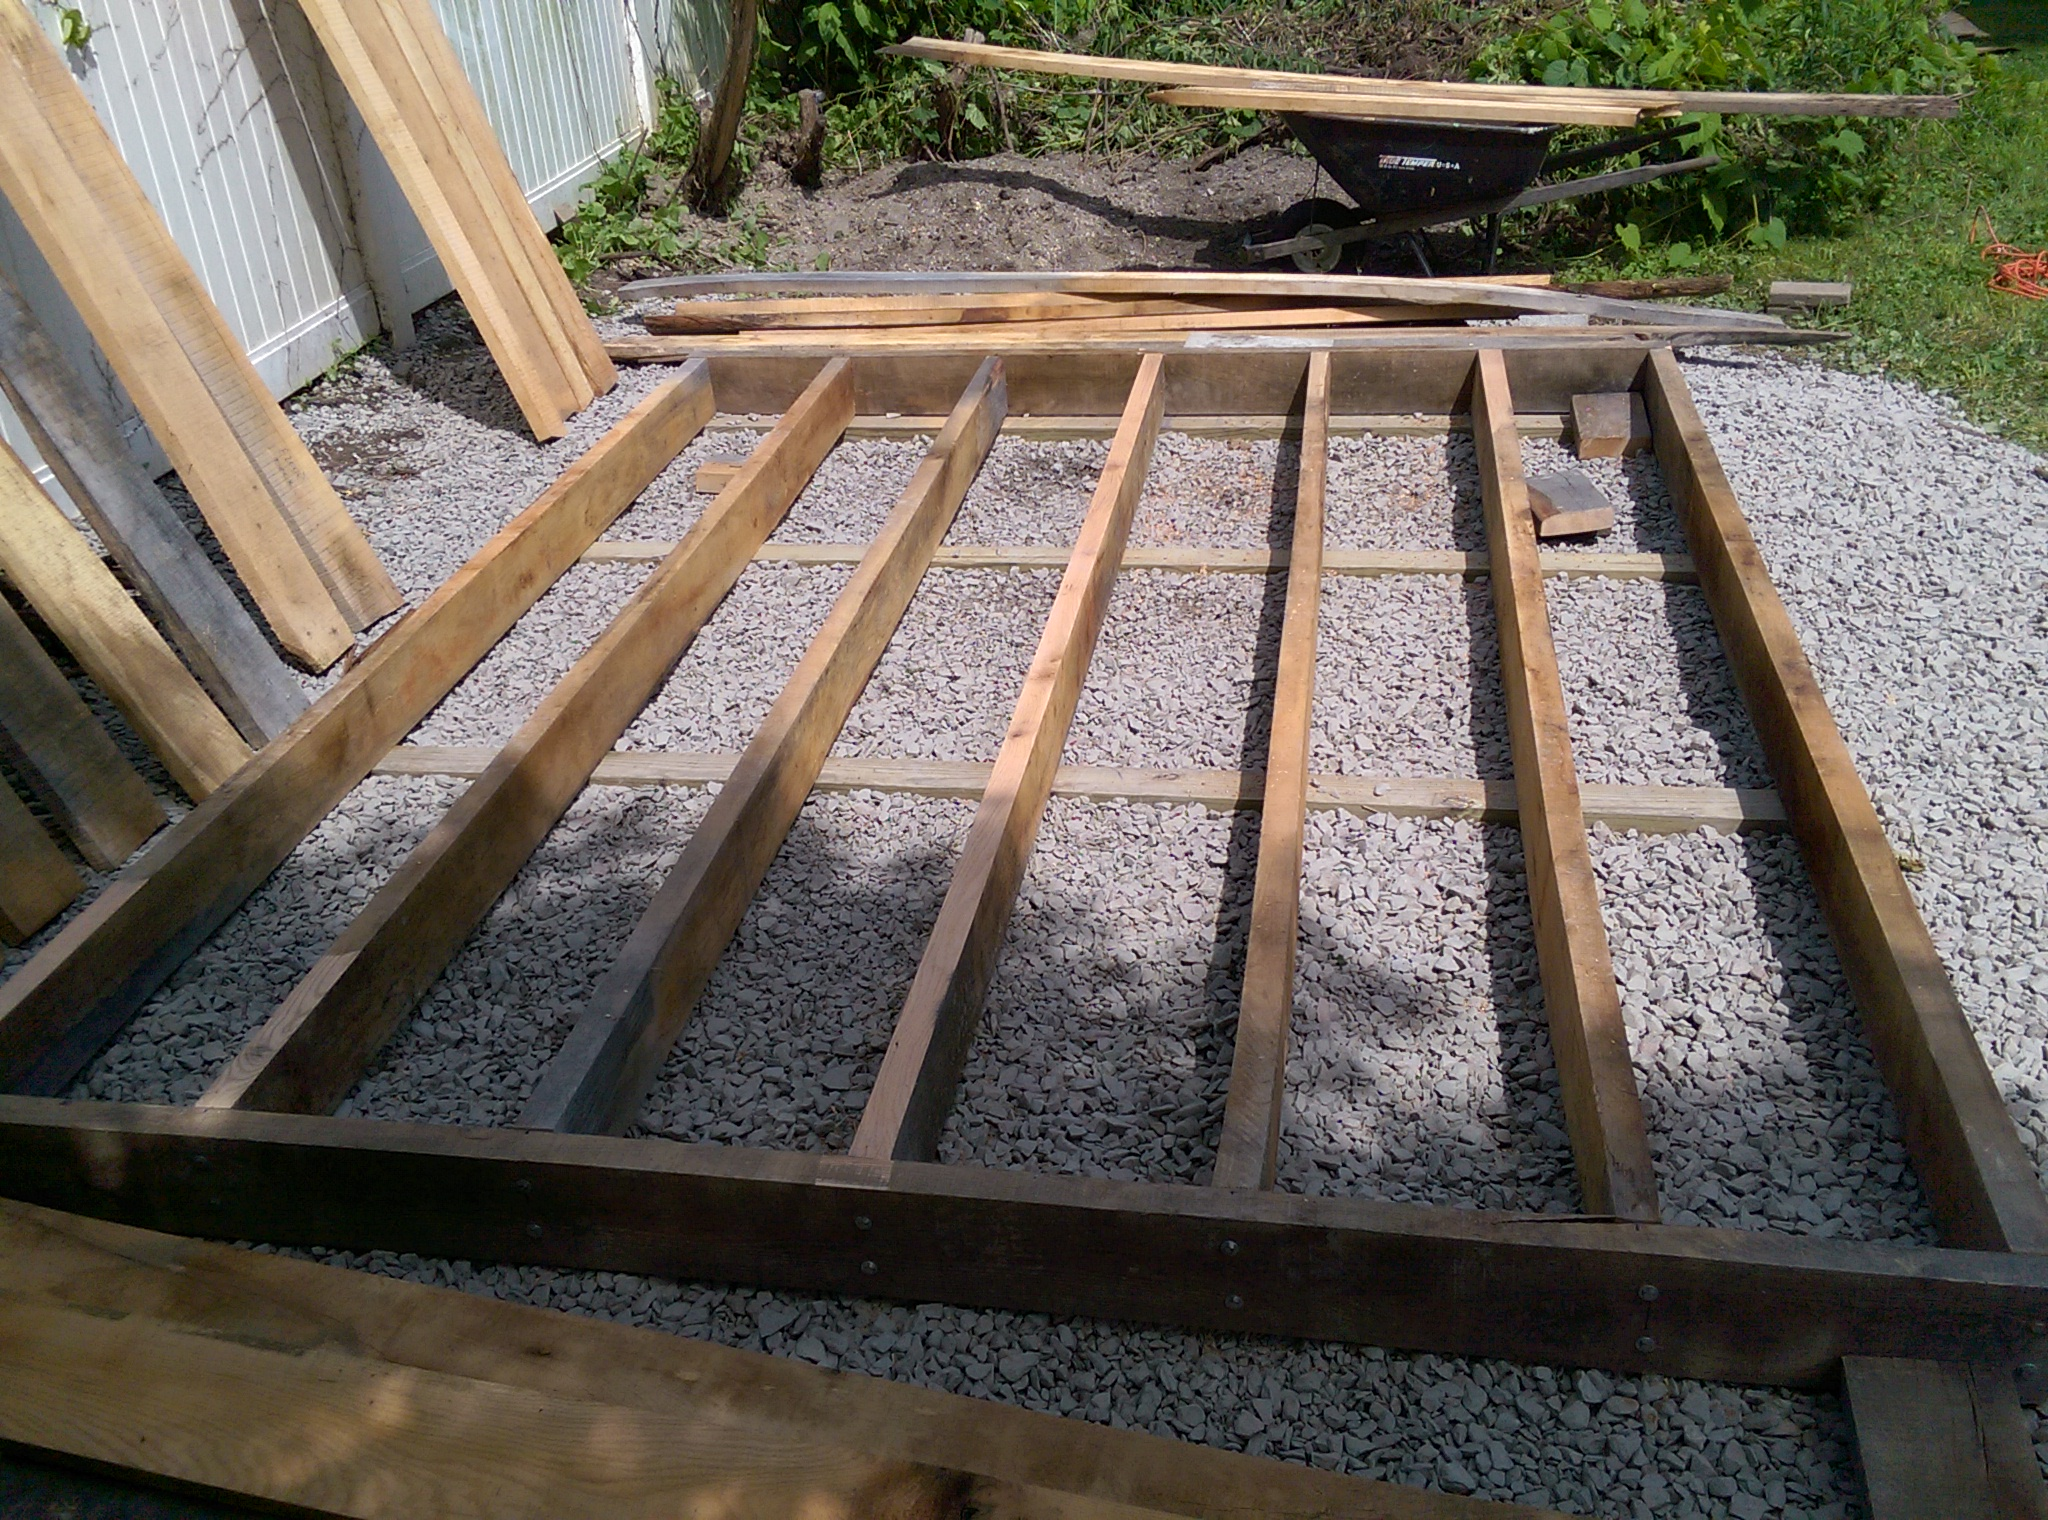 Floor Framing and 4x4 gravel bed base